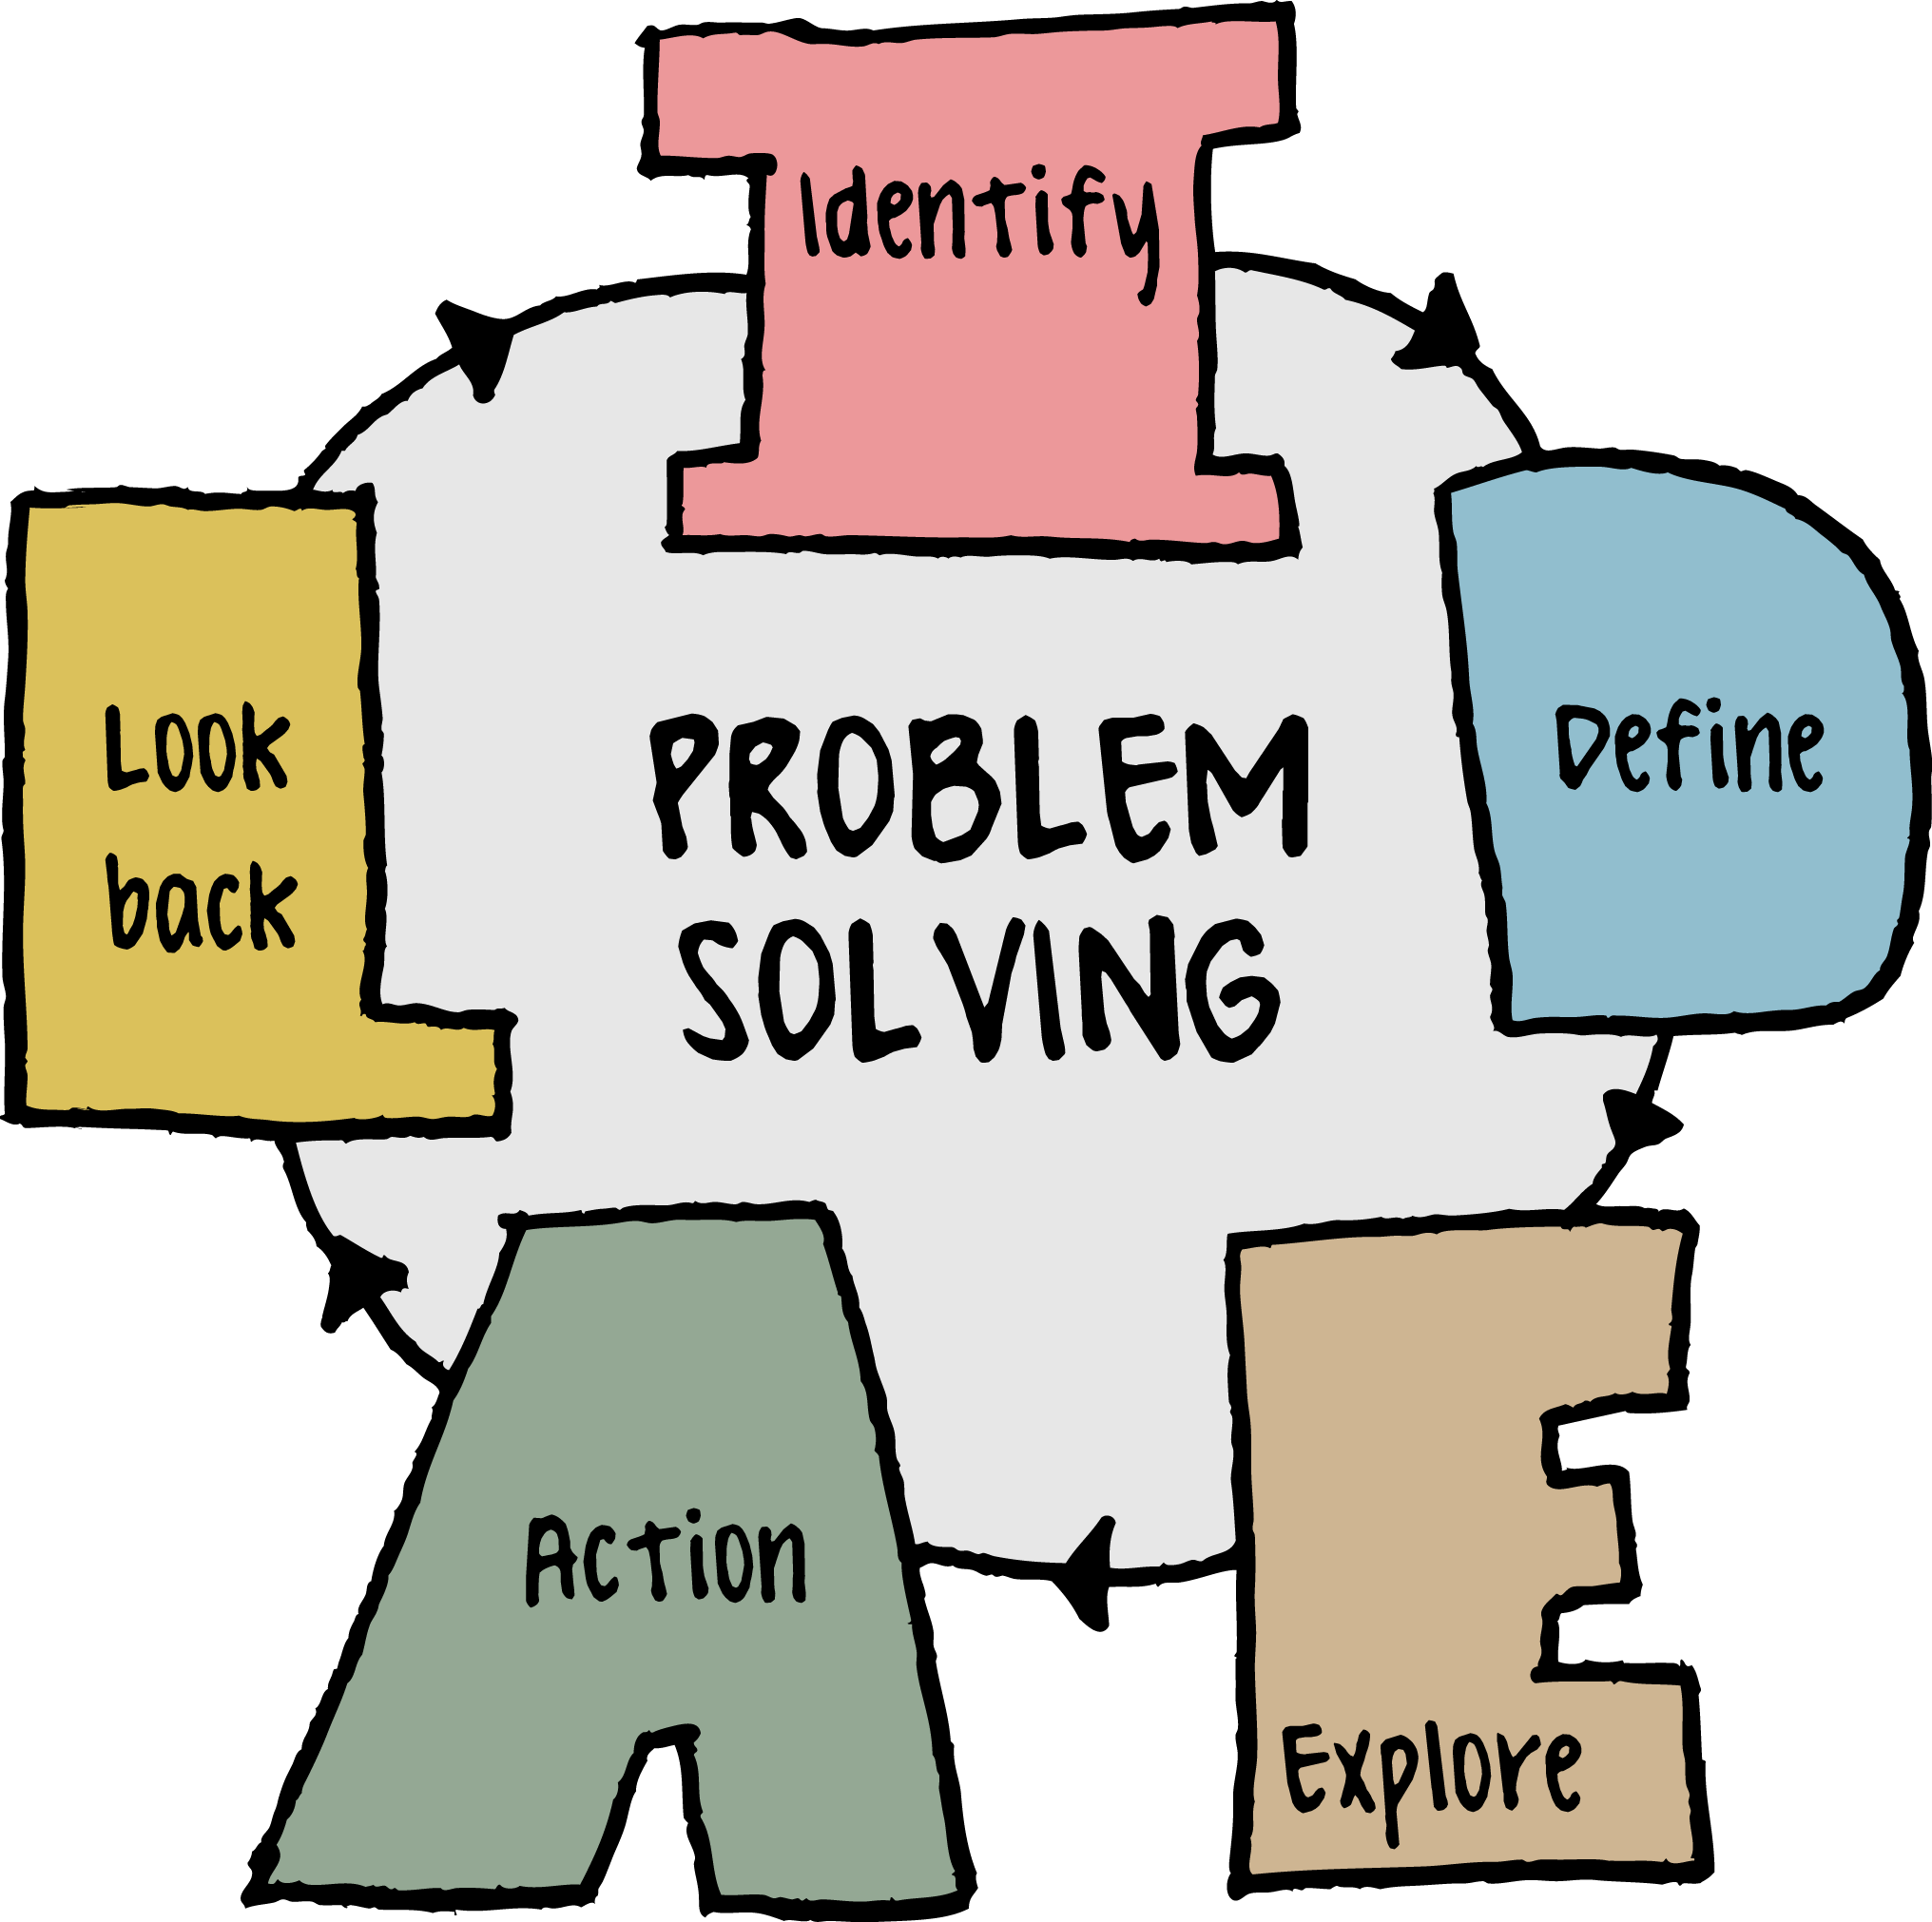 IDEAL heuristic strategy for problem solving